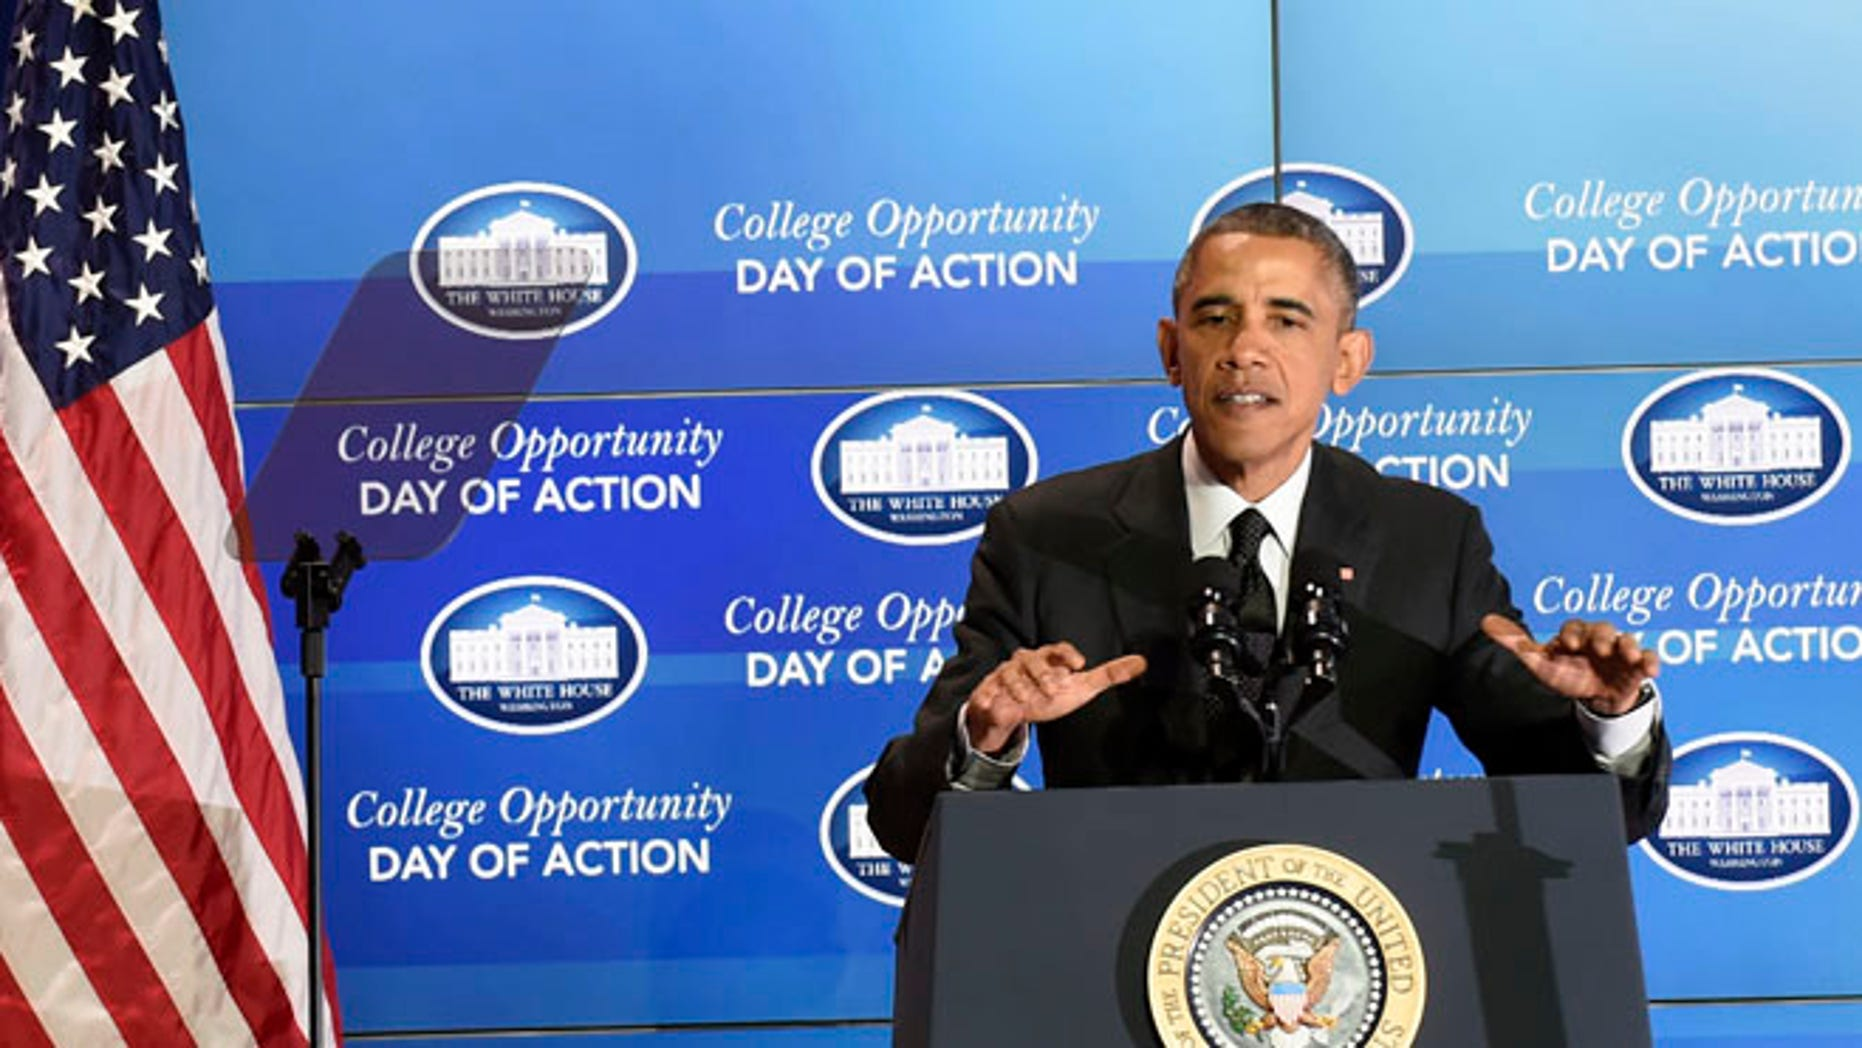 Dec. 4, 2014: President Obama speaks at the Summit on College Opportunity at the Ronald Reagan Building in Washington.